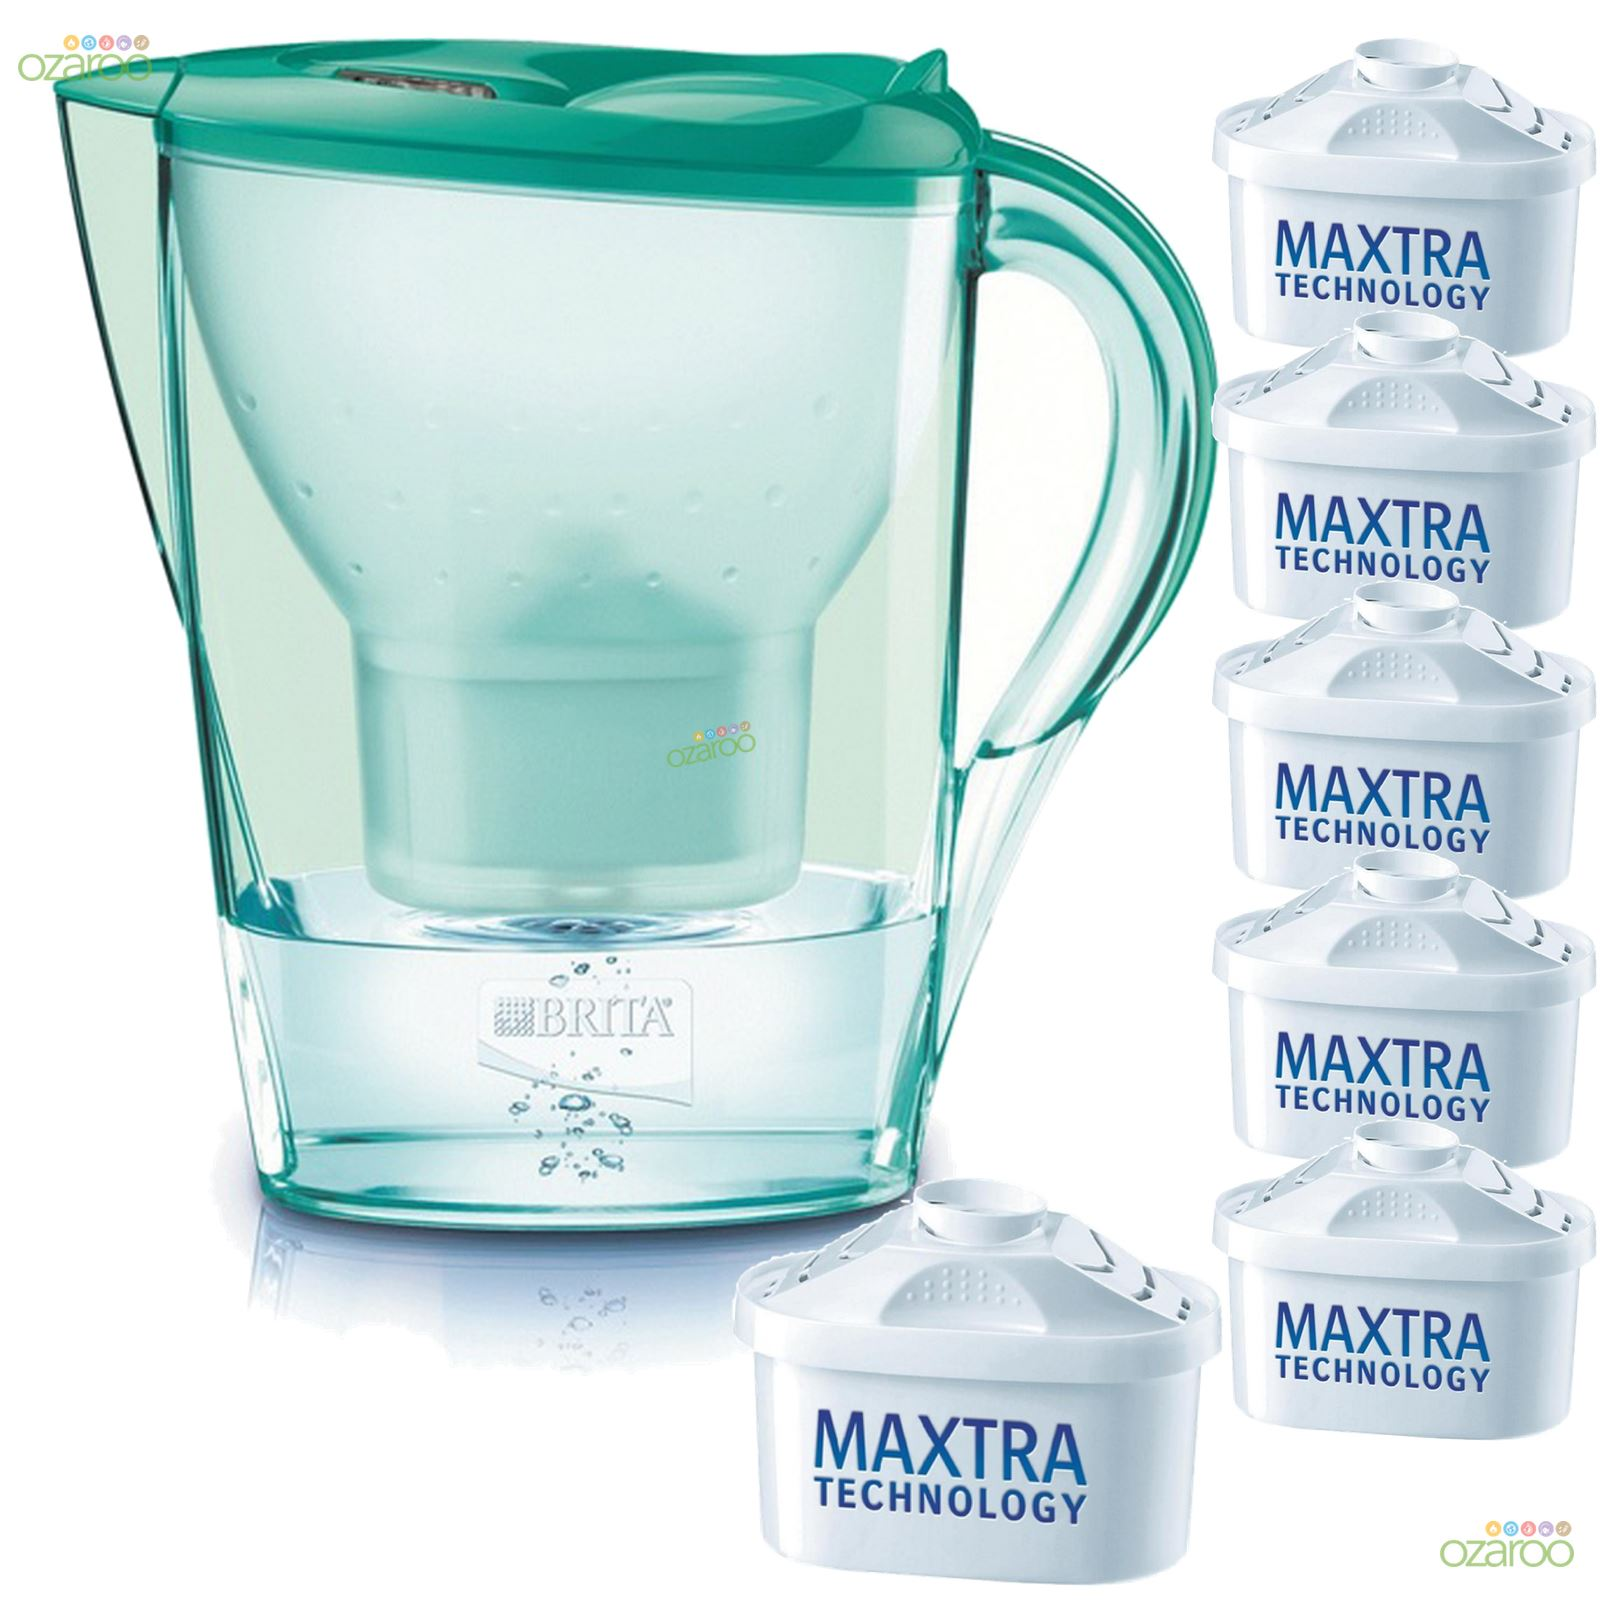 brita colour edition marella water filter jug 6 maxtra. Black Bedroom Furniture Sets. Home Design Ideas